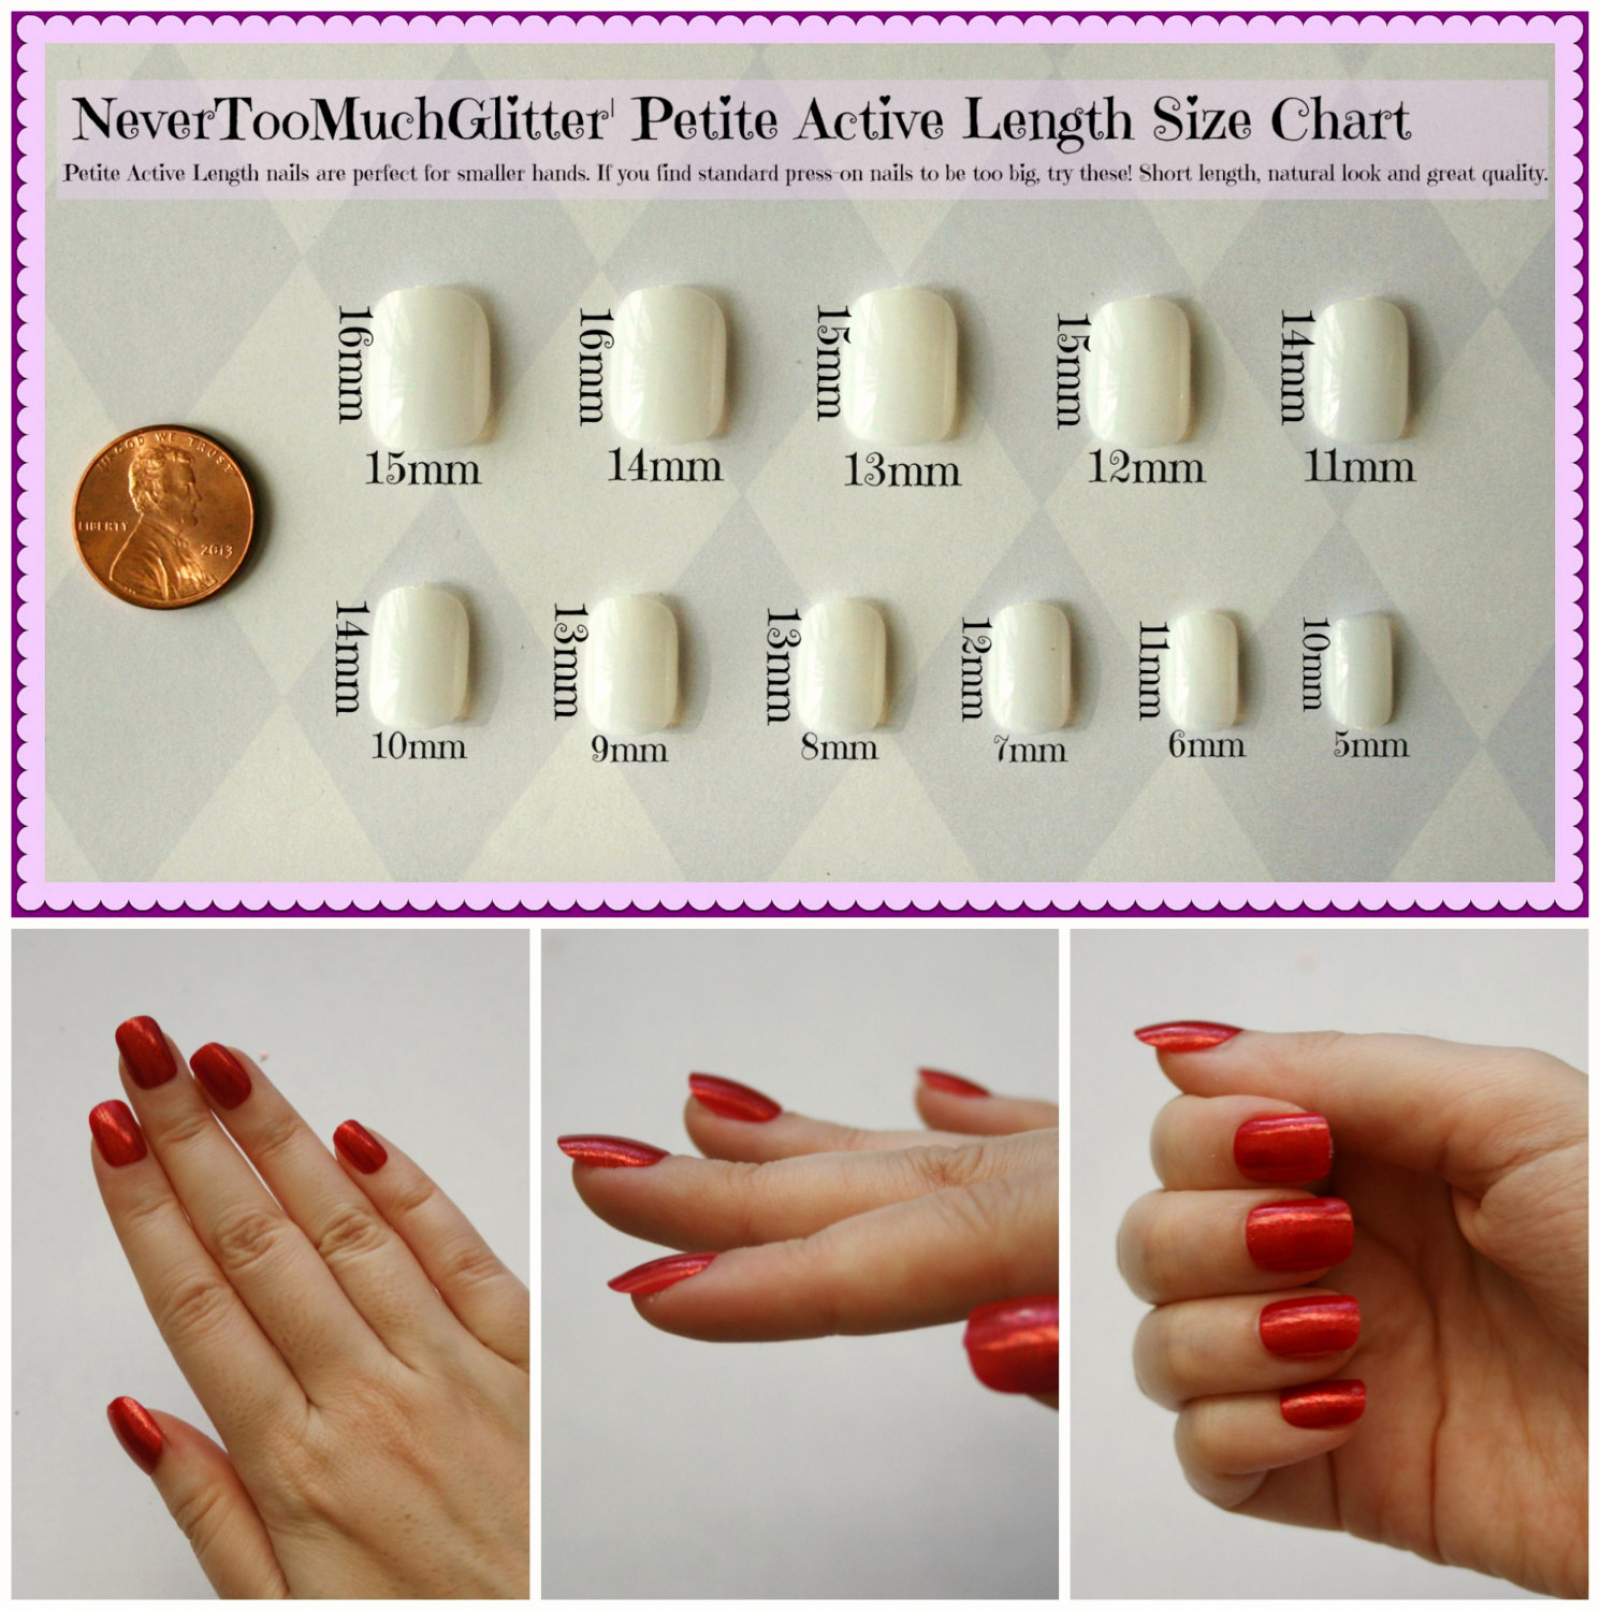 DIY Nail Art Kit- Petite Active Length | Nails By NeverTooMuchGlitter